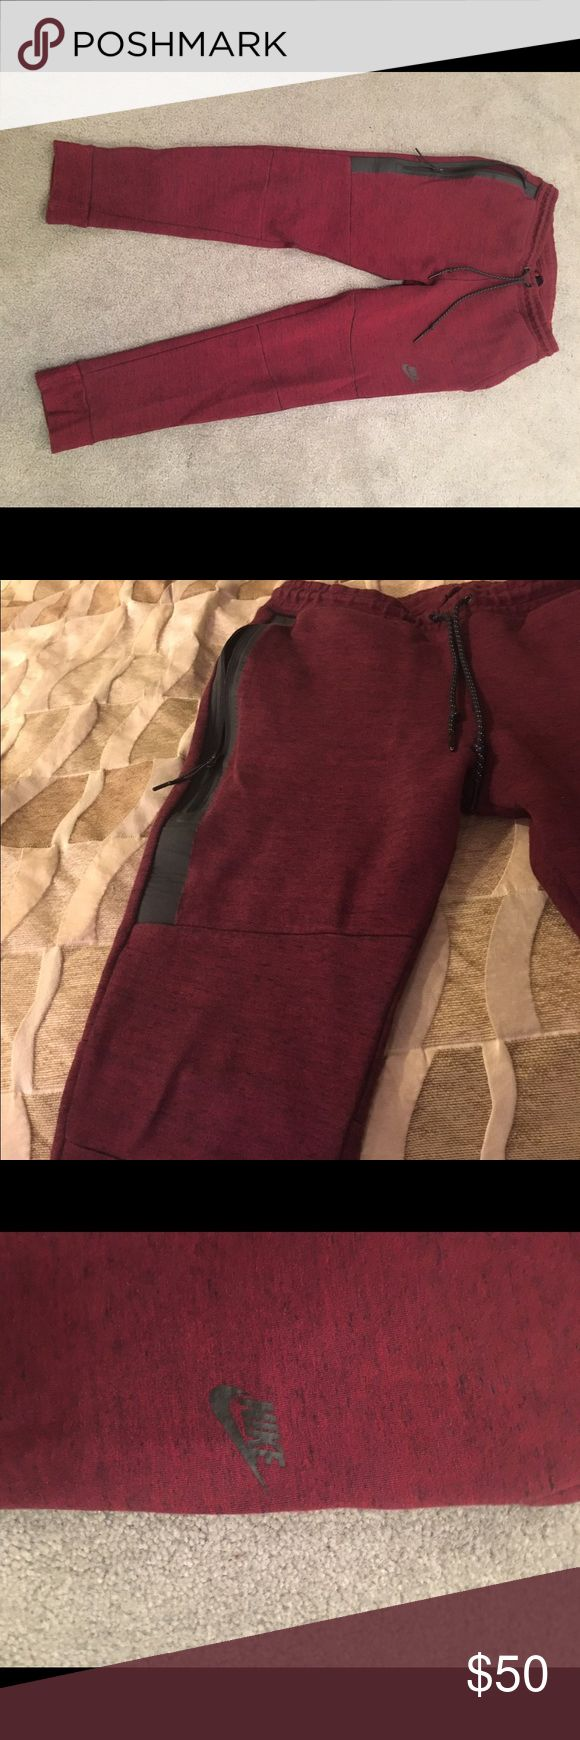 """Nike Joggers Men's dark red Nike Joggers.  Picture with pants on hanger is best representation of actual color.  Black zippers and Drawstring.  Note wear/slight damage on back right.  Purchased as Medium but washed and dried so they shrunk.  The waist from left to right is 14"""". The length from waist to bottom of pant is 36 1/2"""". Nike Pants Sweatpants & Joggers"""